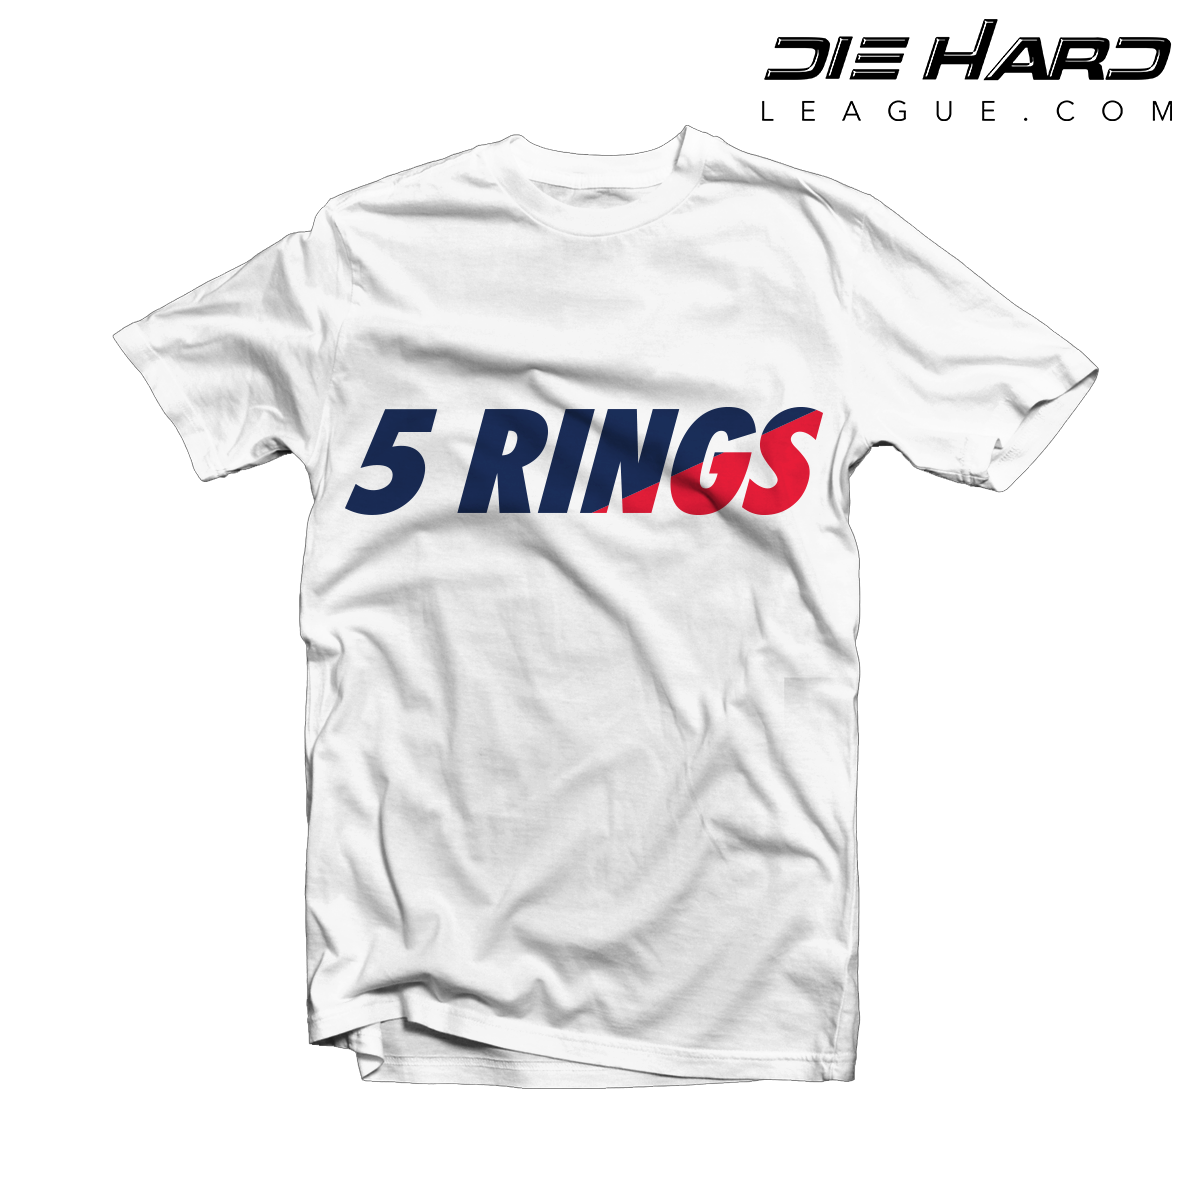 Patriots Shirt - New England Patriots 5 Rings White Tee 29bdfb1d2